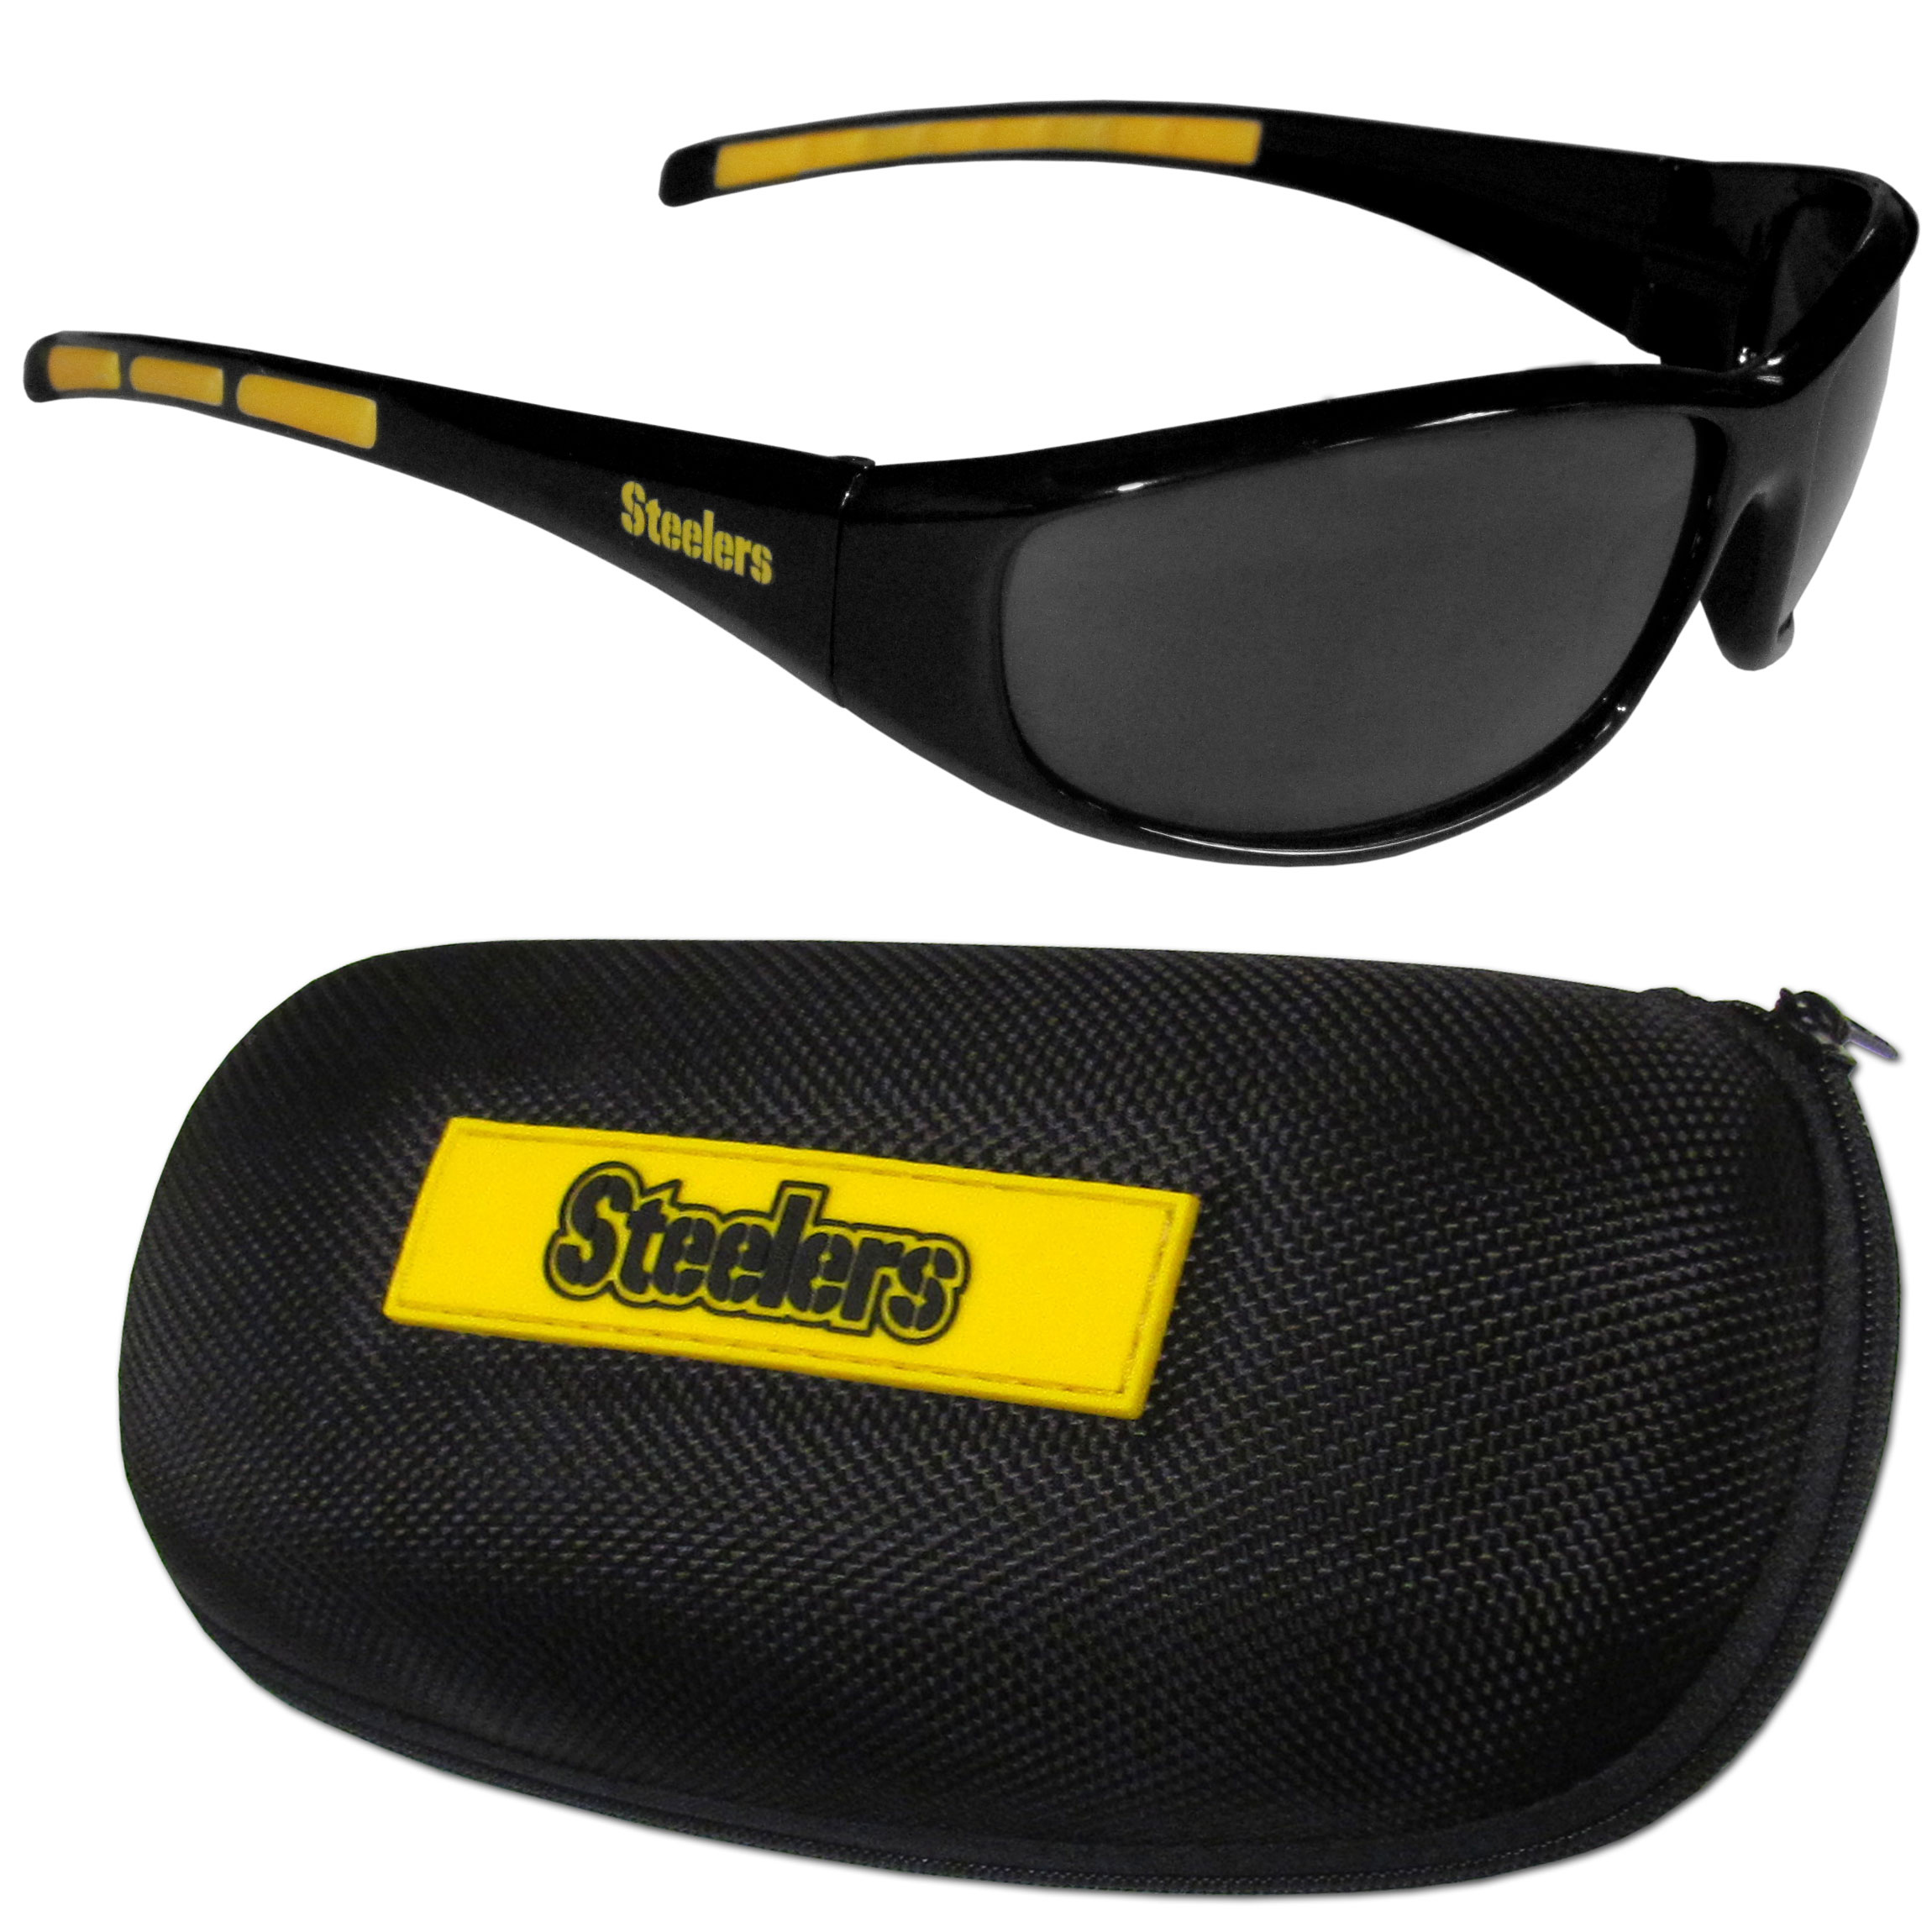 Pittsburgh Steelers Wrap Sunglass and Case Set - This great set includes a high quality pair of Pittsburgh Steelers wrap sunglasses and hard carrying case.